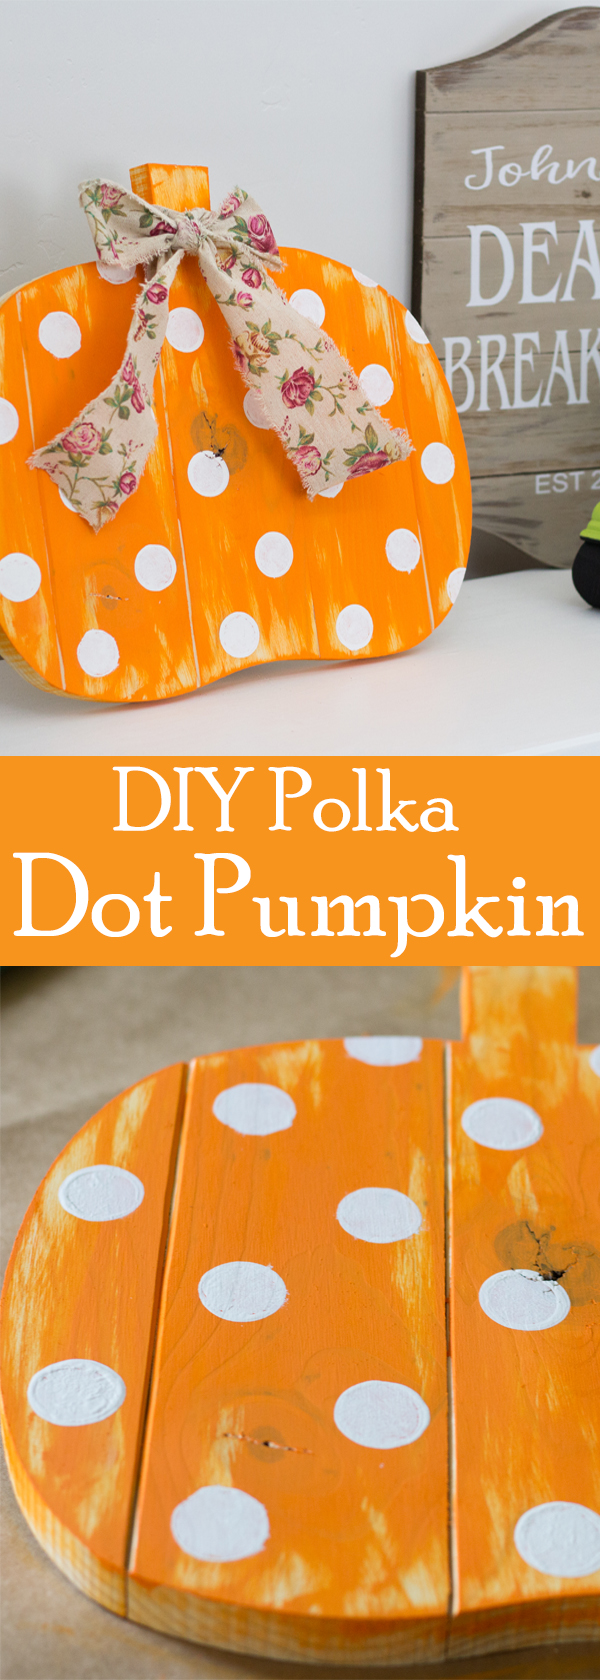 Fall DIY Polka Dot Pumpkin